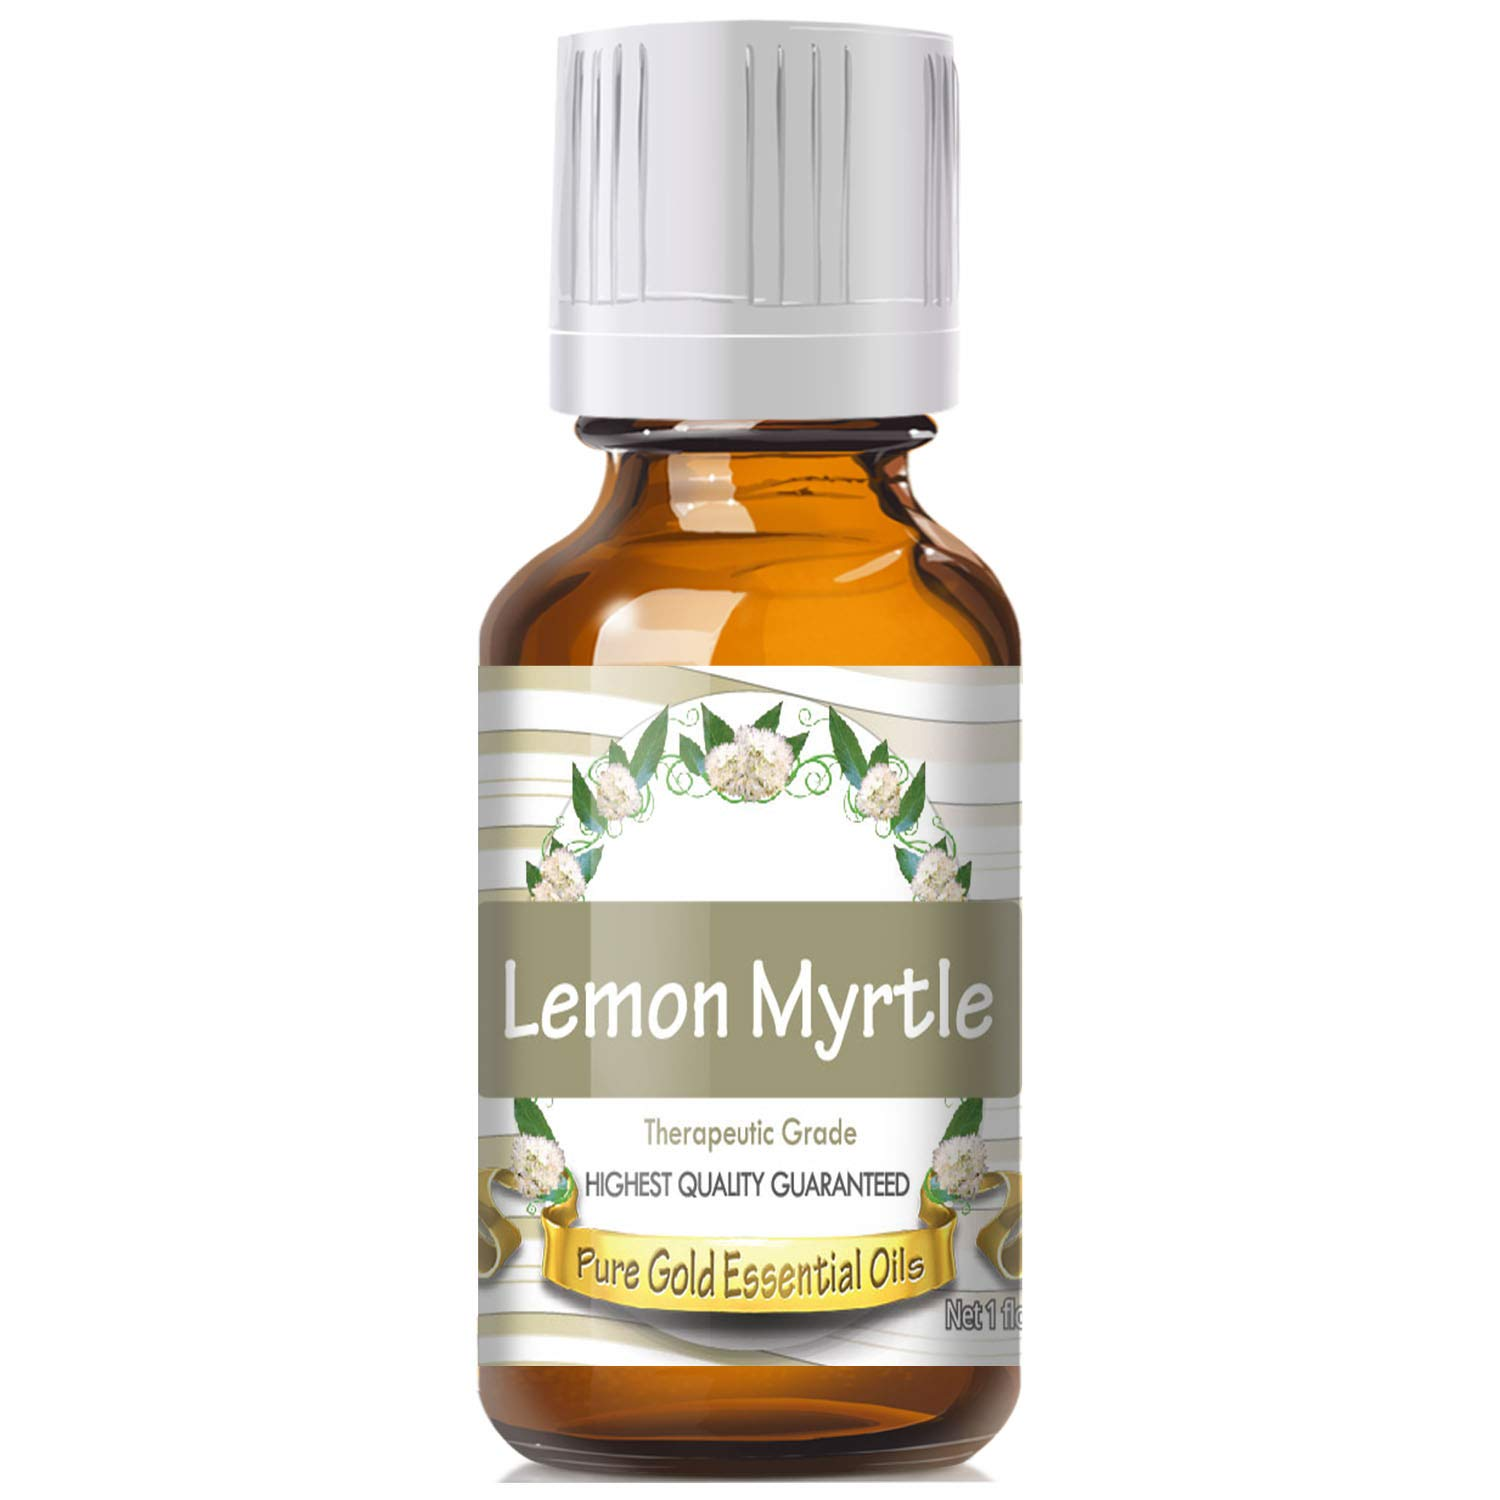 Lemon Myrtle Essential Oil (100% Pure, Natural, UNDILUTED) 30ml - Best Therapeutic Grade - Perfect for Your Aromatherapy Diffuser, Relaxation, More!